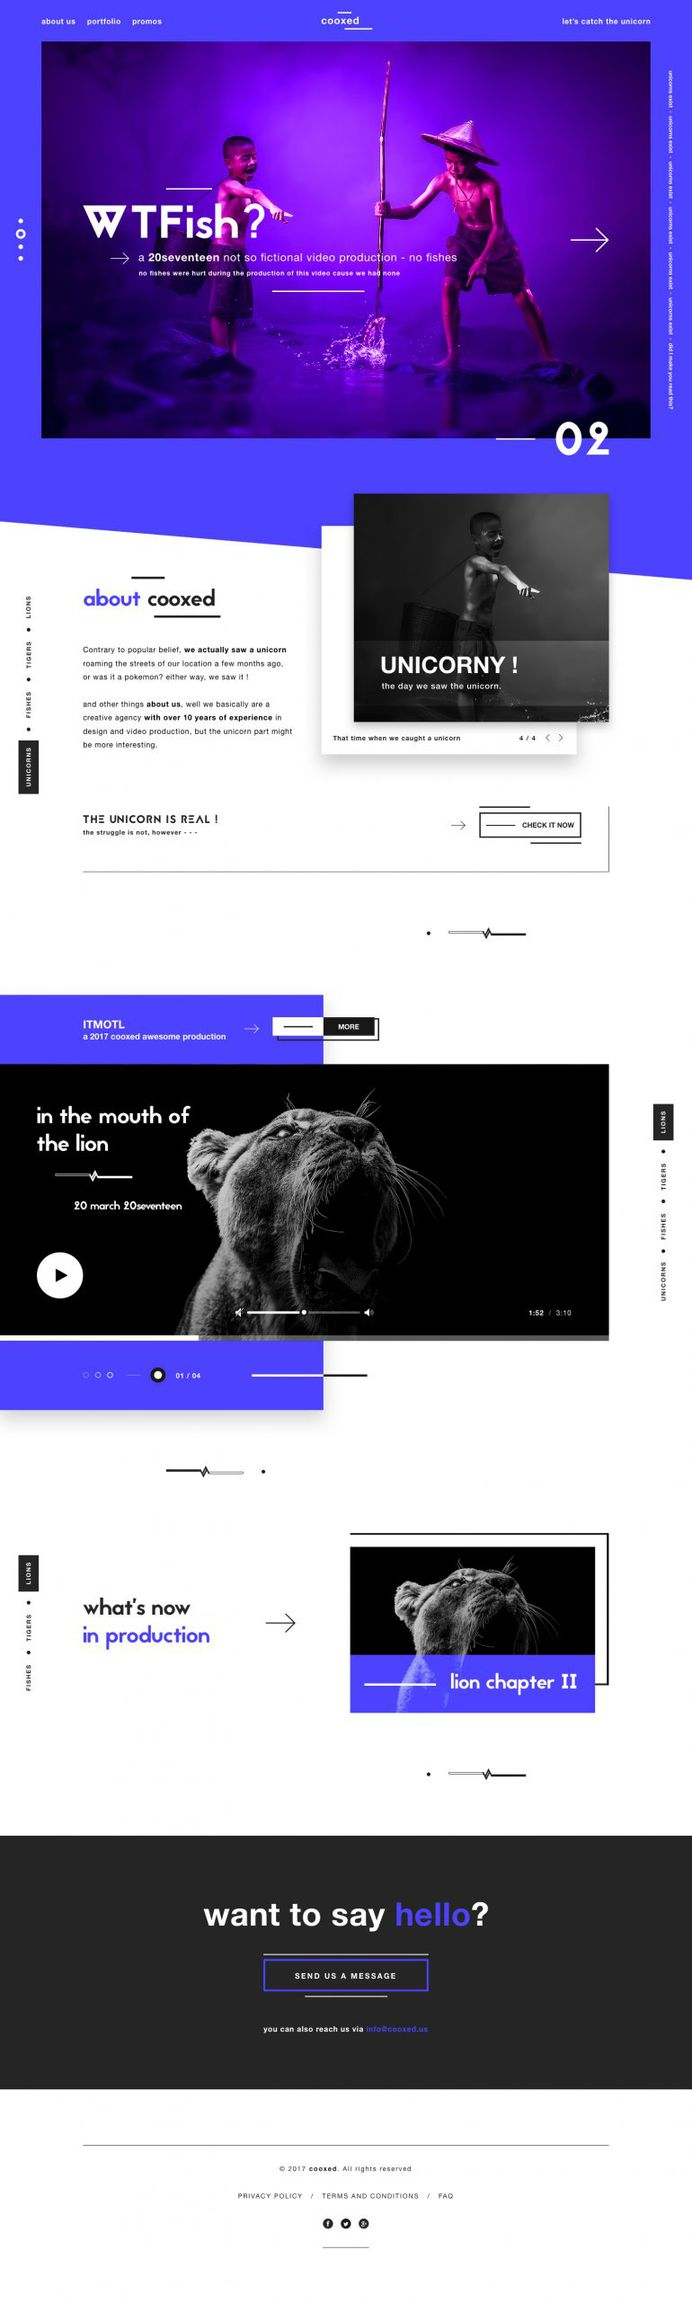 Cooxed – A Funky Digital Agency